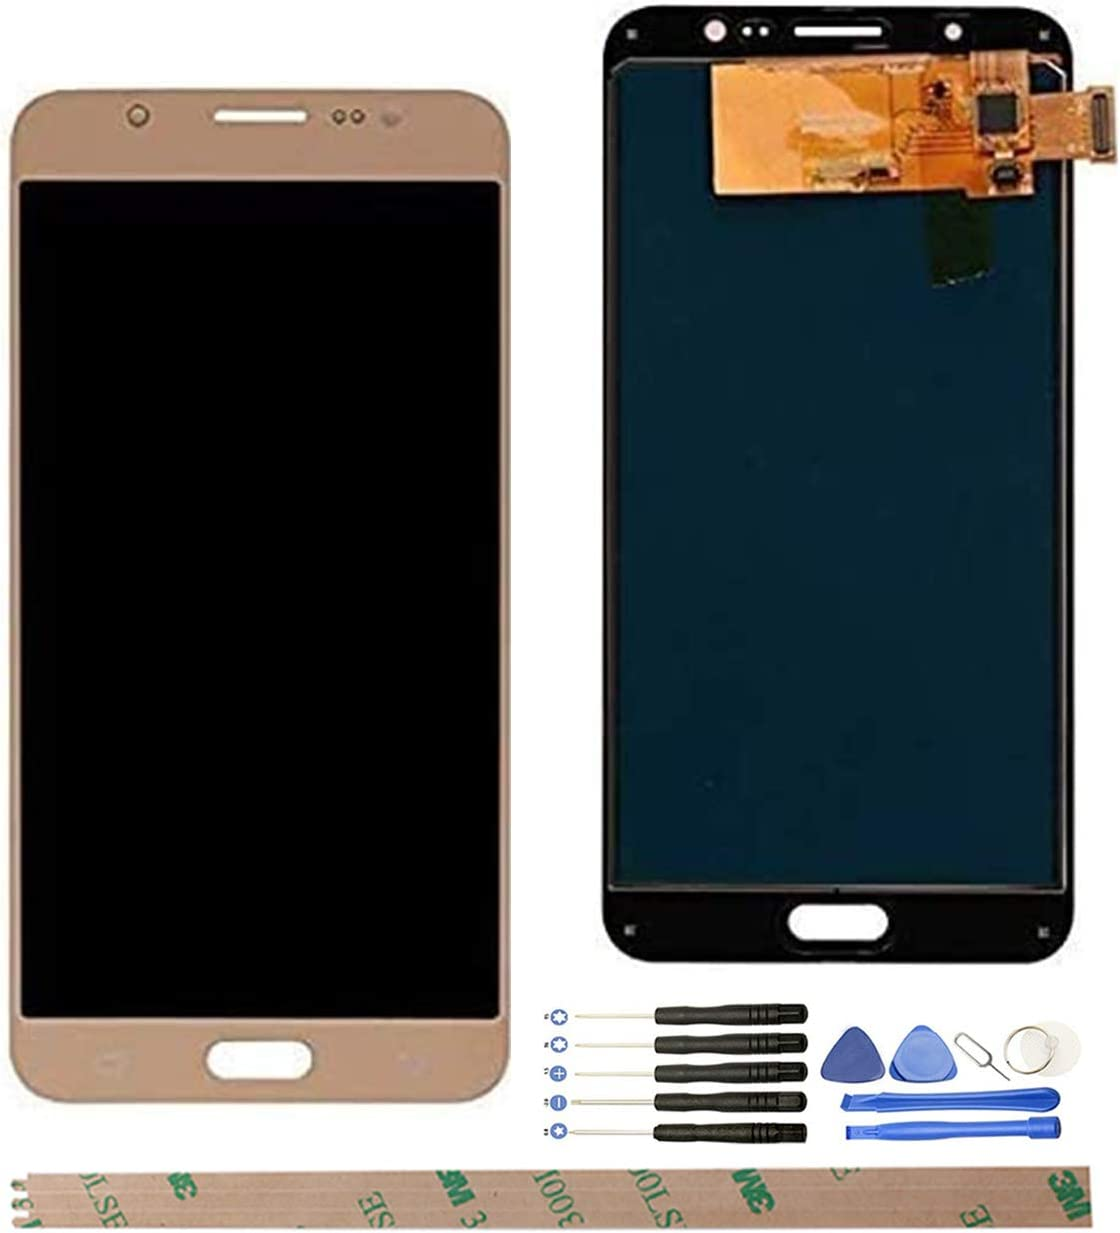 White A Set of Tools HYYT Replacement for Samsung Galaxy J7 Prime G610 On Nxt On7 Prime SM-G610M//DS 2016 5.5 LCD Display Touch Screen Digitizer Assembly